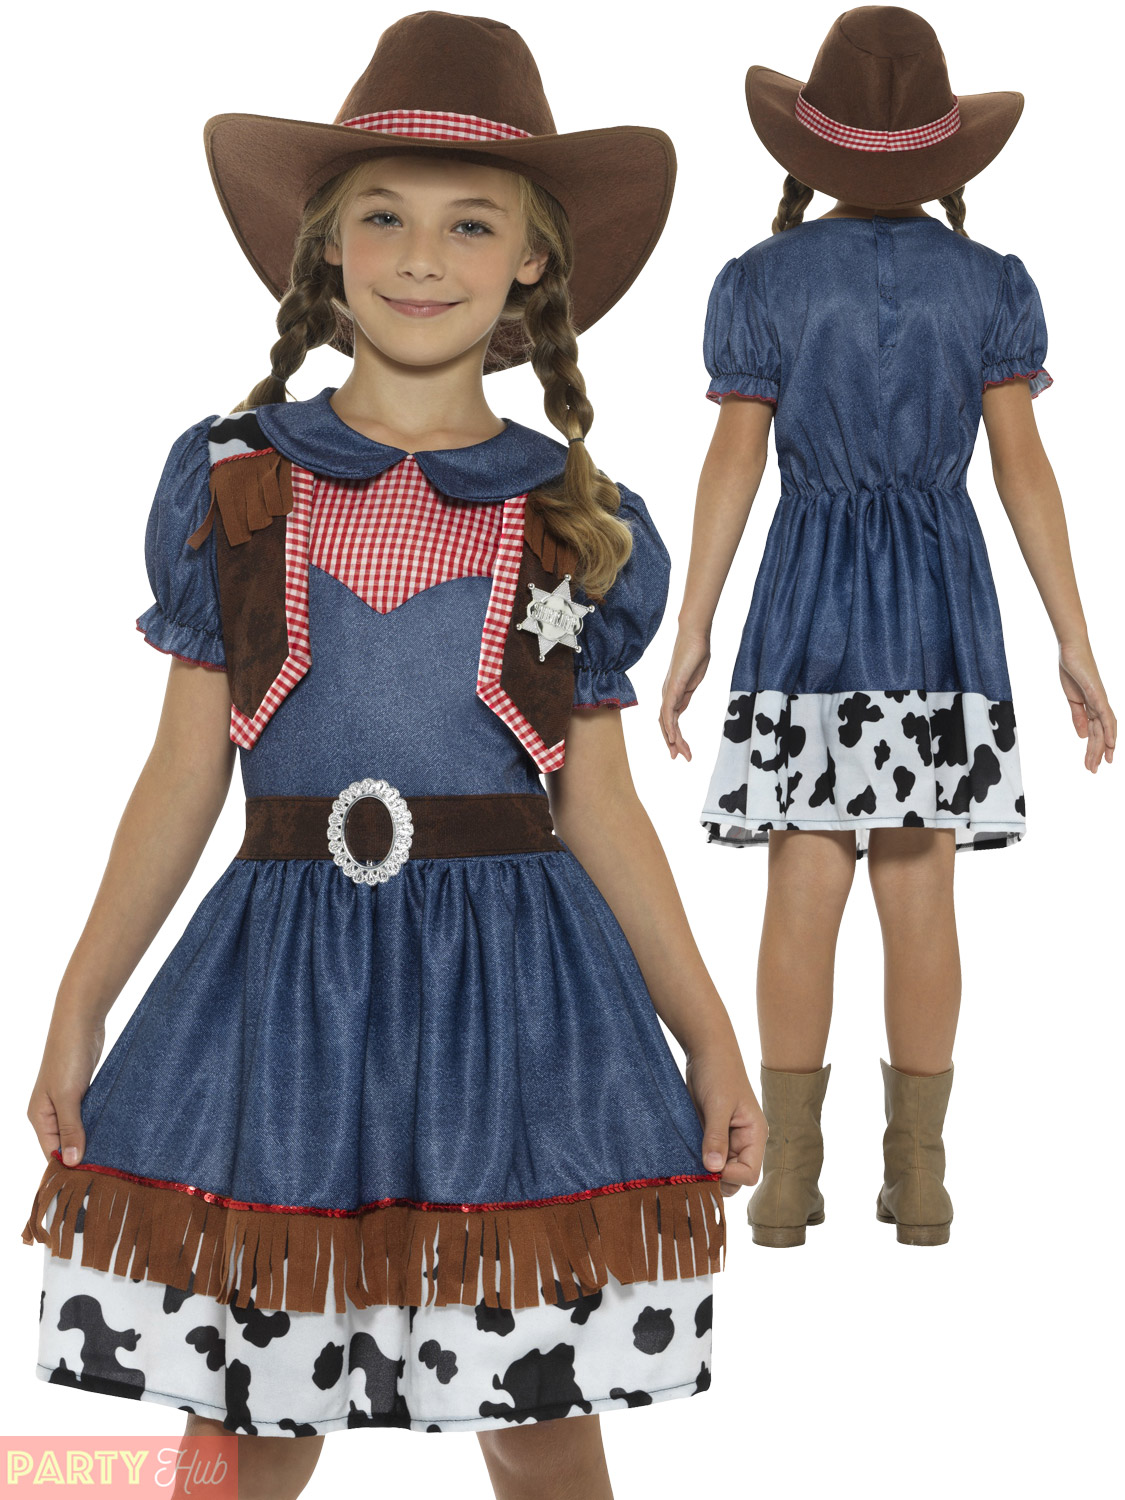 Texan Cowgirl Costume Dress Girls Fancy Outfit Wild Western Book